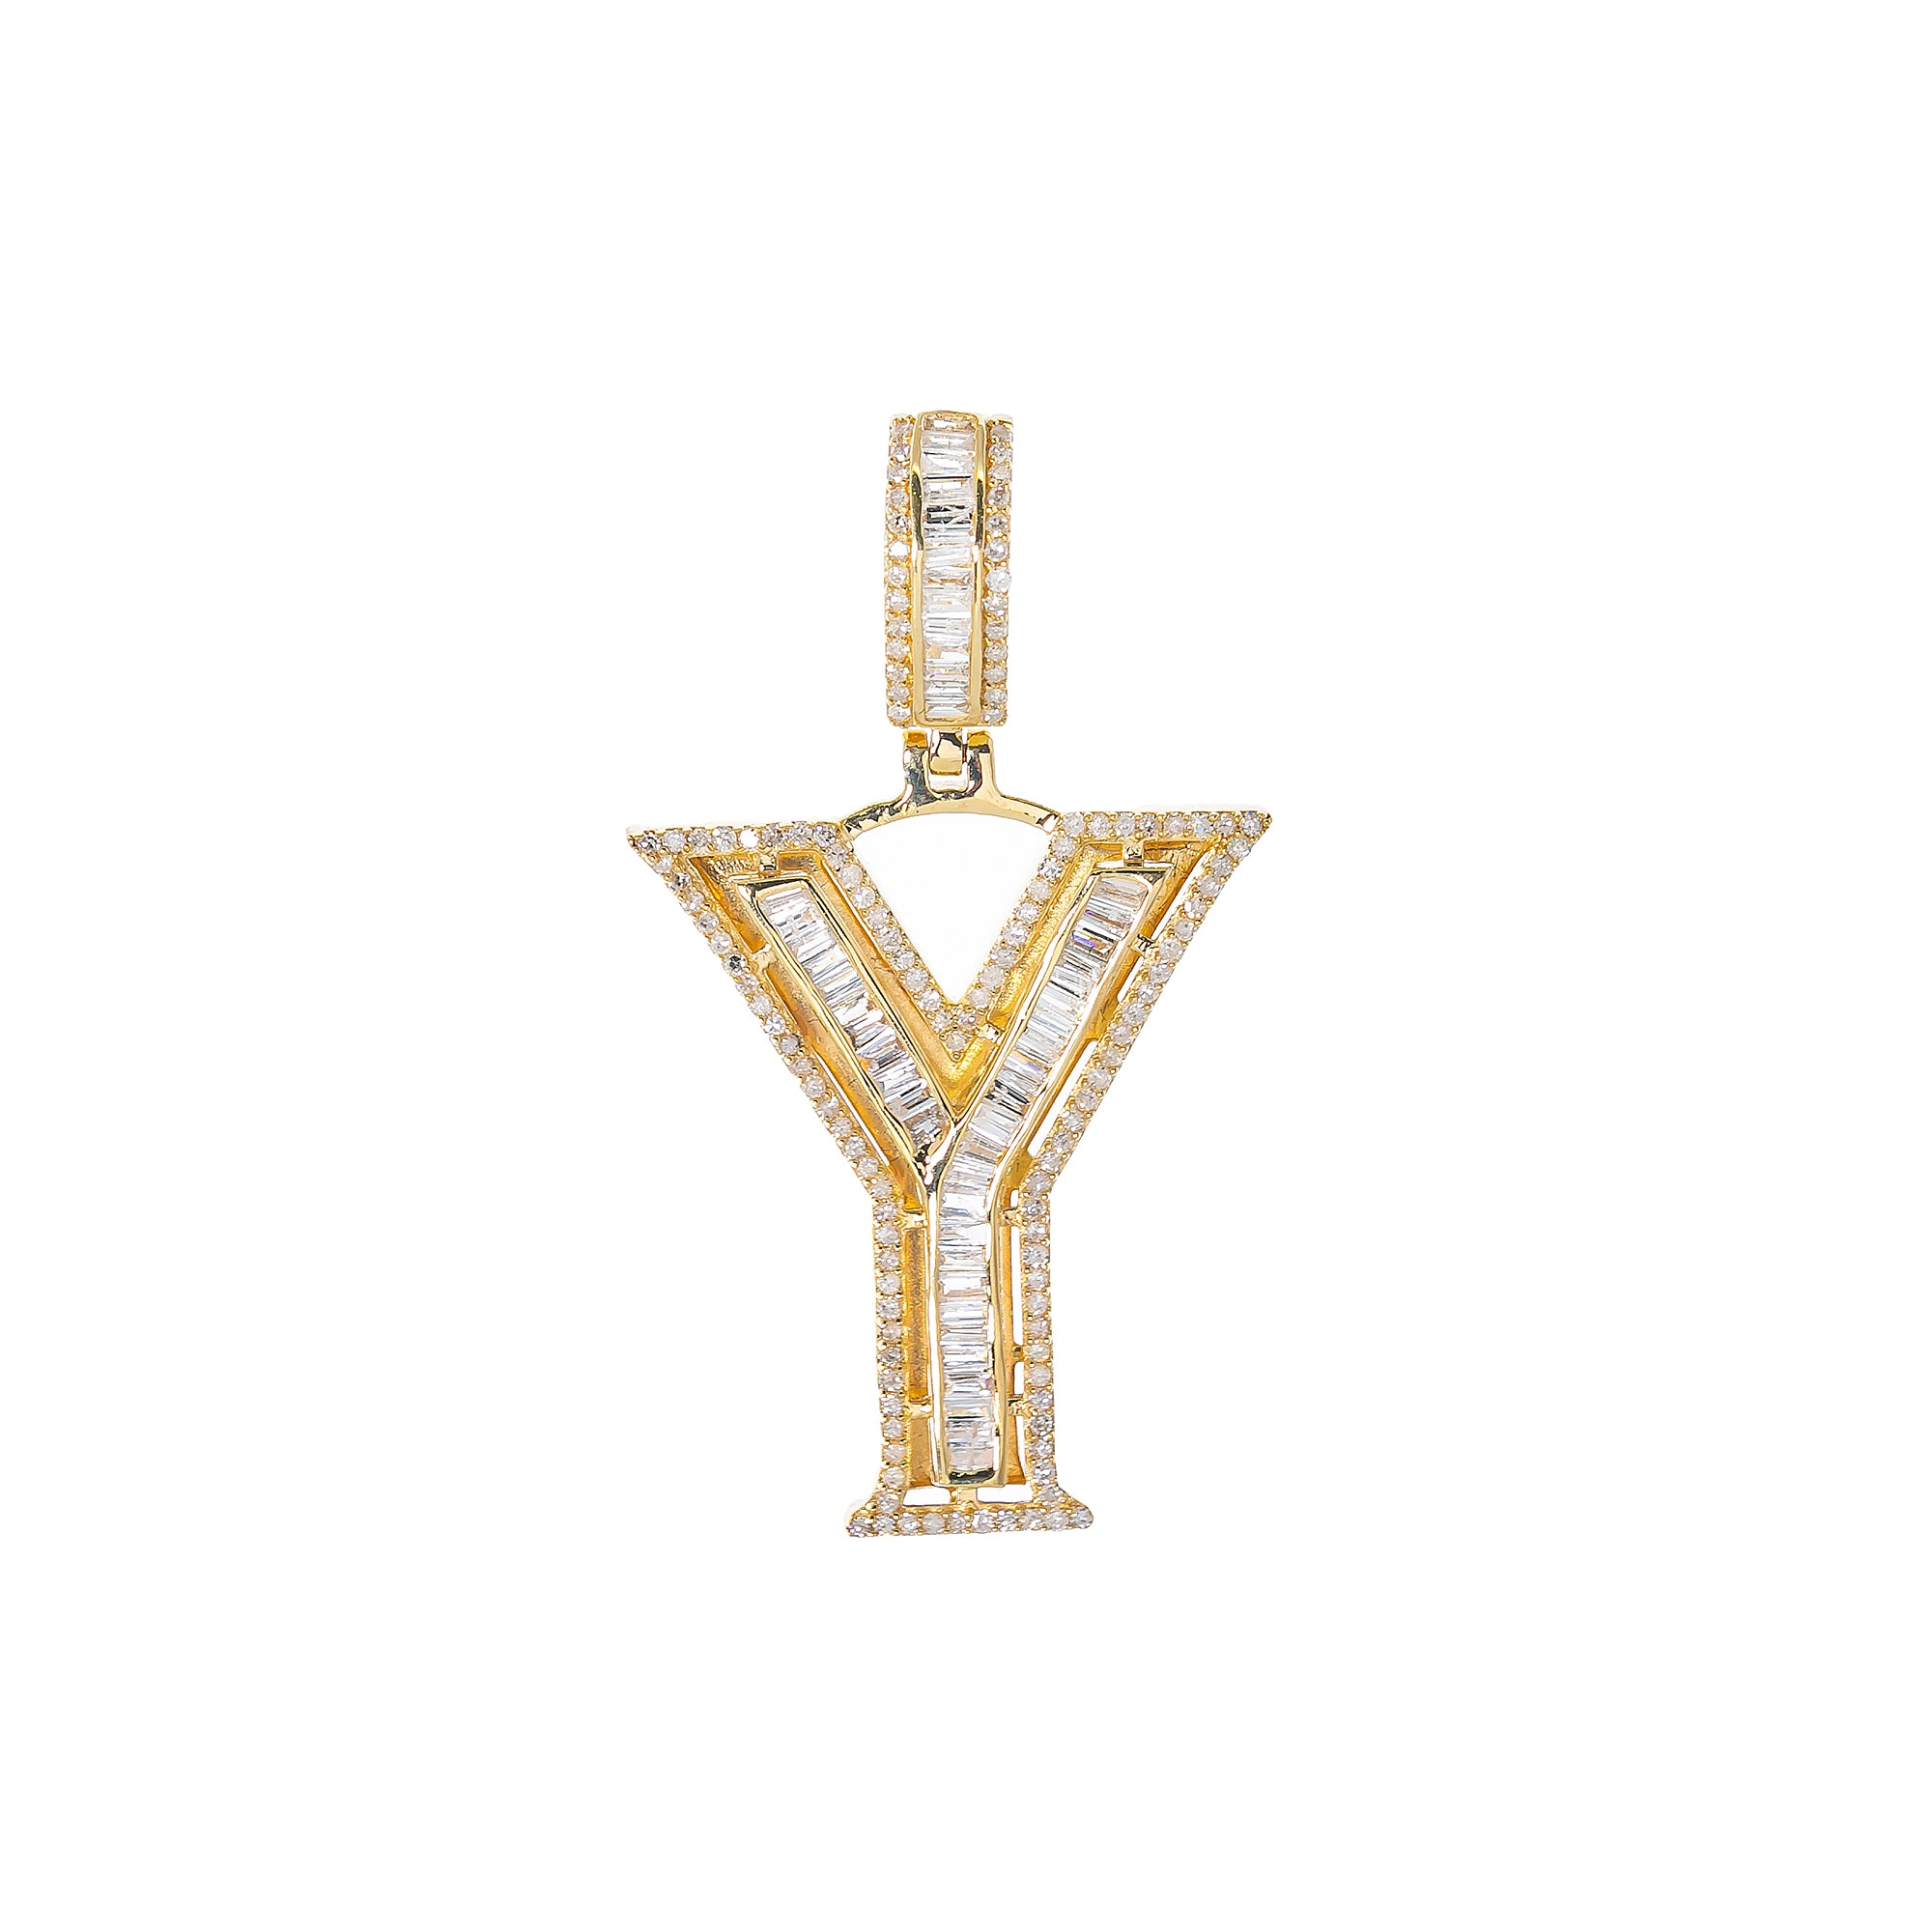 14K YELLOW GOLD UNISEX LETTER Y WITH 0.87 CT DIAMONDS